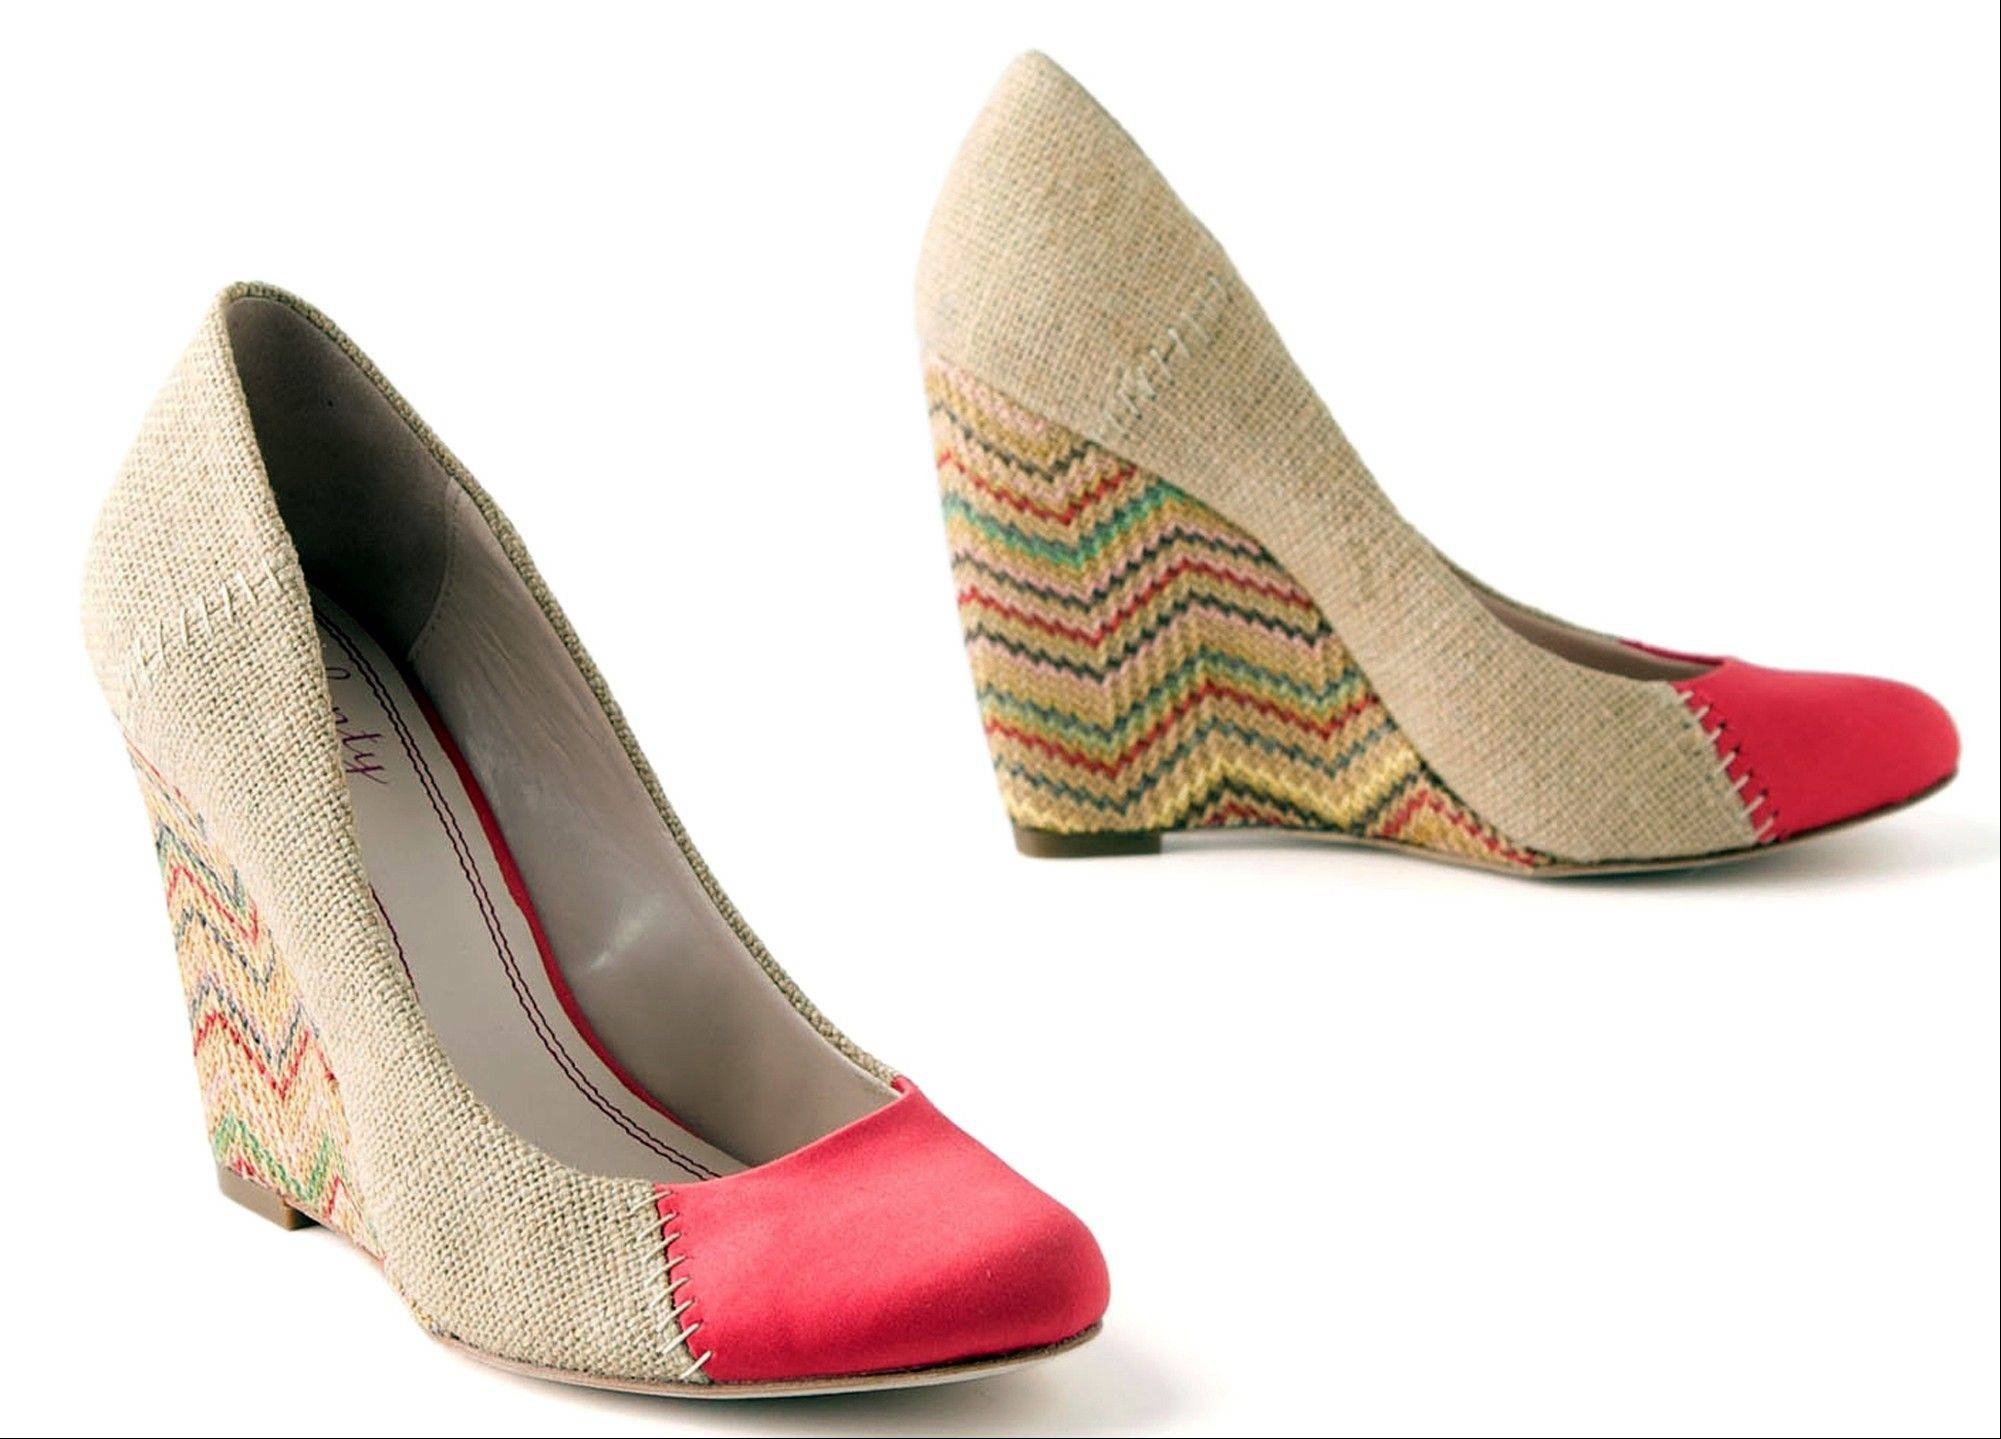 If you're not typically a pattern person, try chevrons on your feet first with these stitched chevron wedges, $130 at www.anthropologie.com.